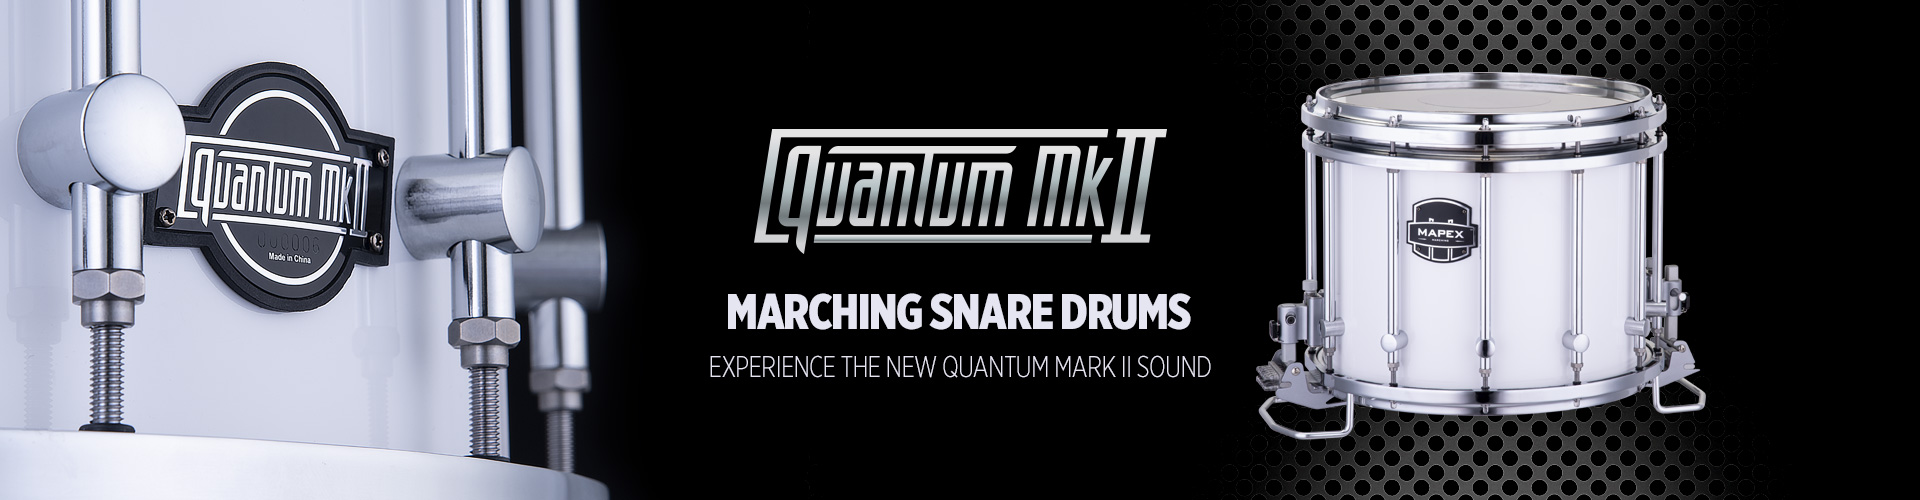 QMkII Snare Drums